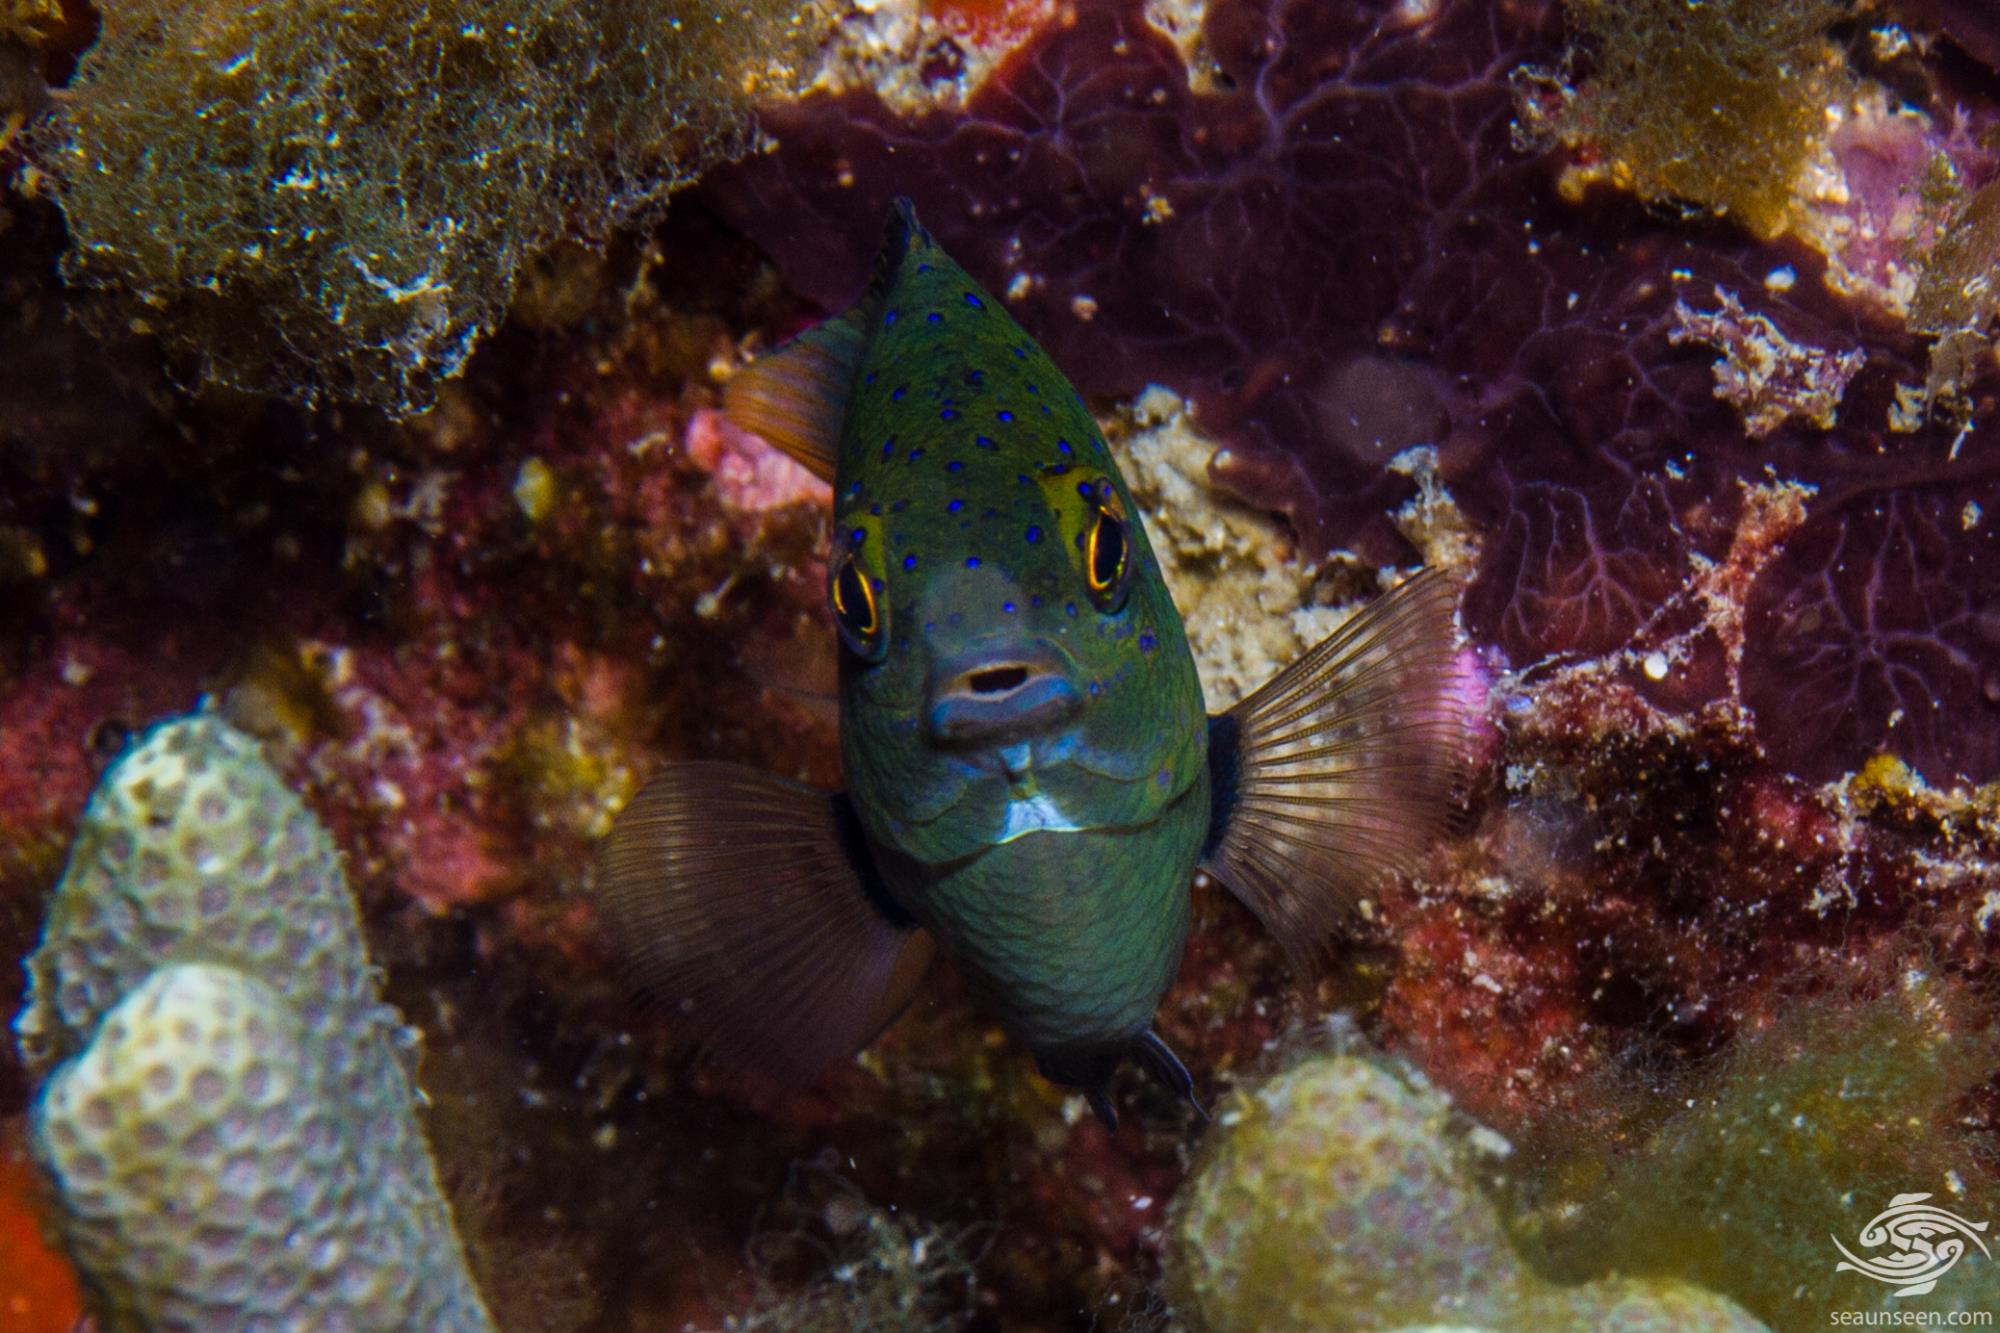 Jewel damselfish Plectroglyphidodon lacrymatus is also known as the Whitespeckled Demoiselle and the Whitespotted devil